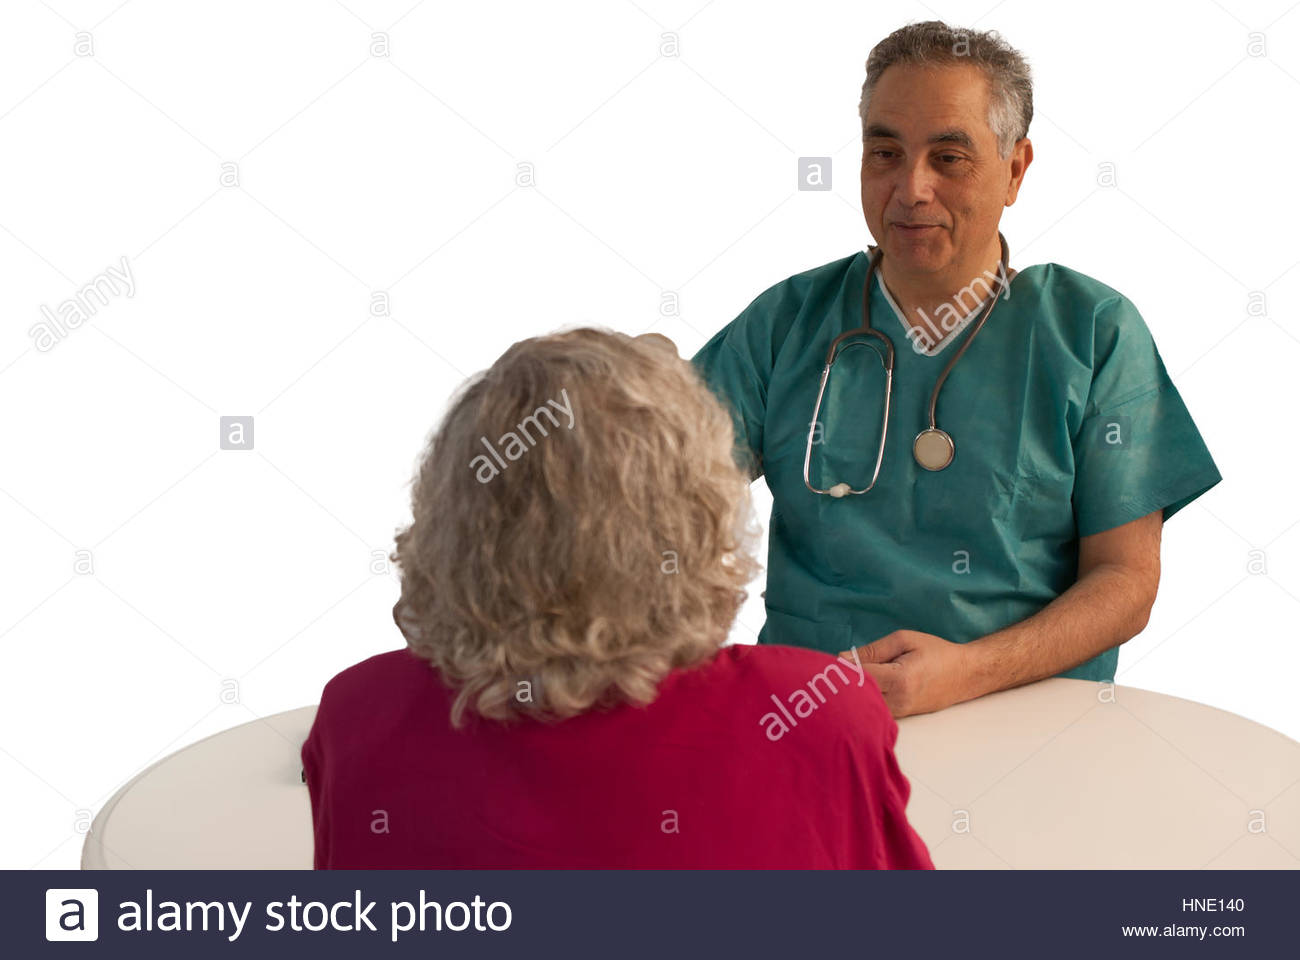 Surgeon consulting patient - Stock Image